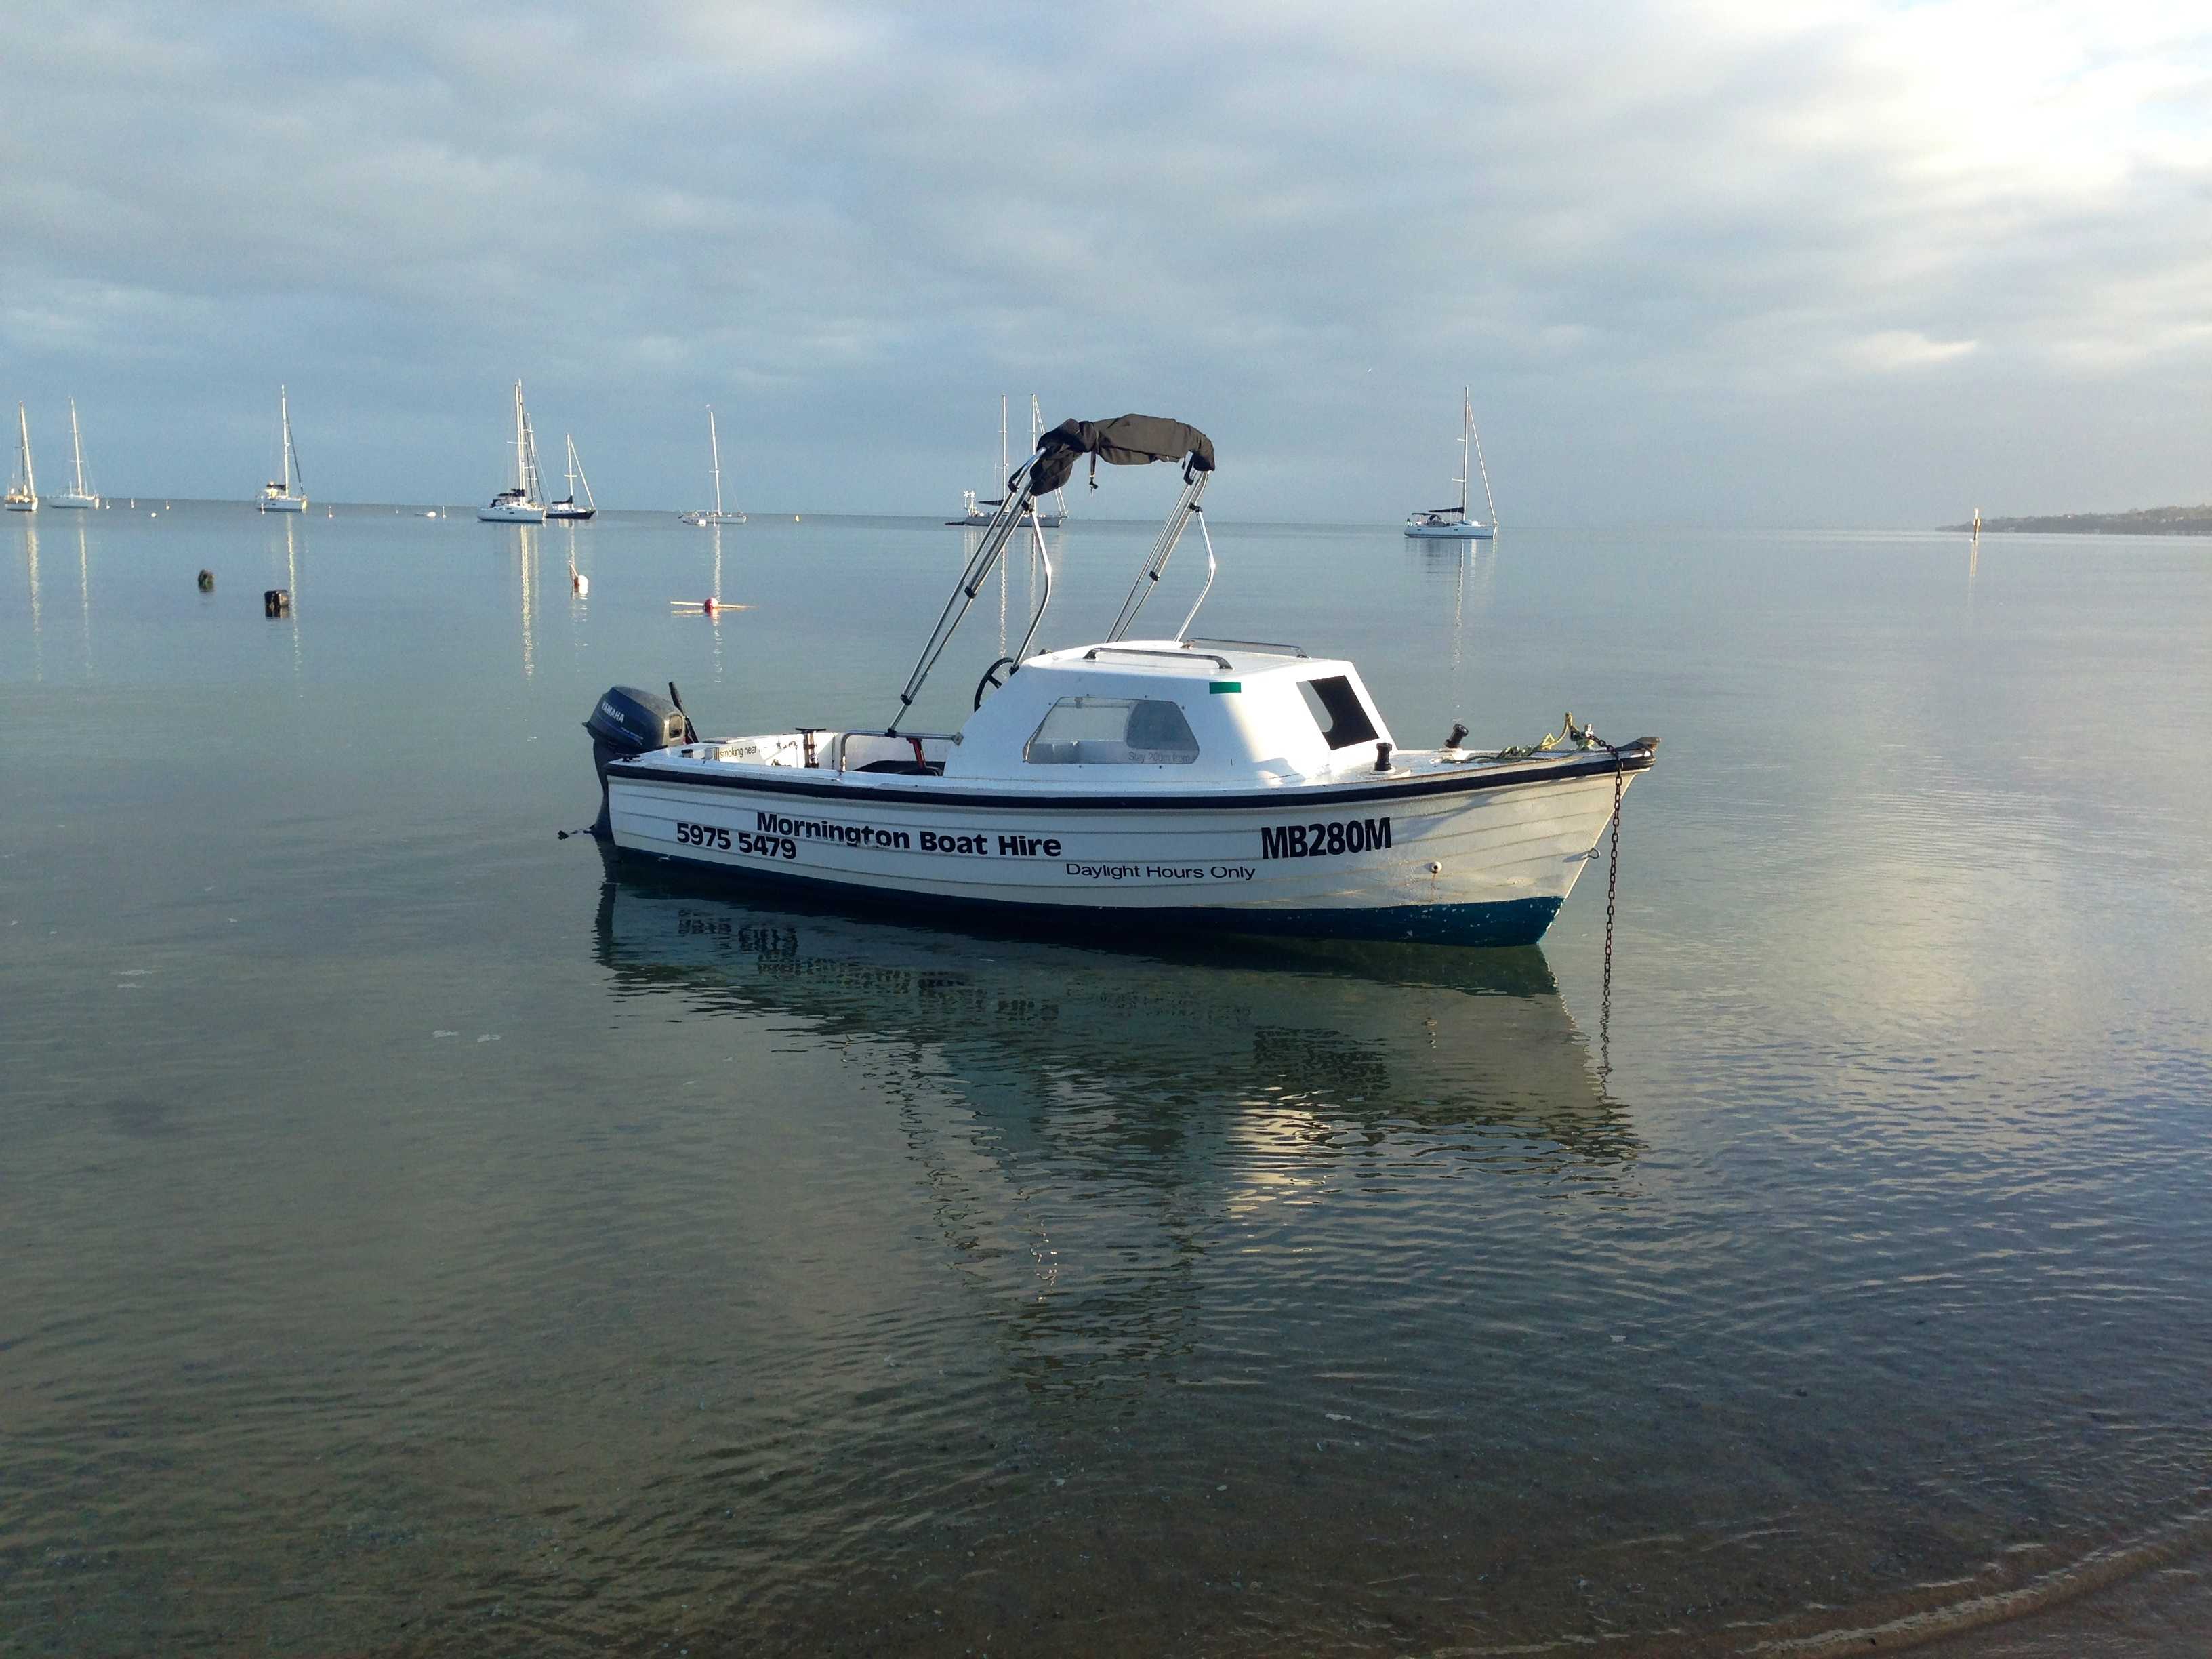 halfcabin fishing boat for hire melbourne mornington peninsula frankston mordialloc